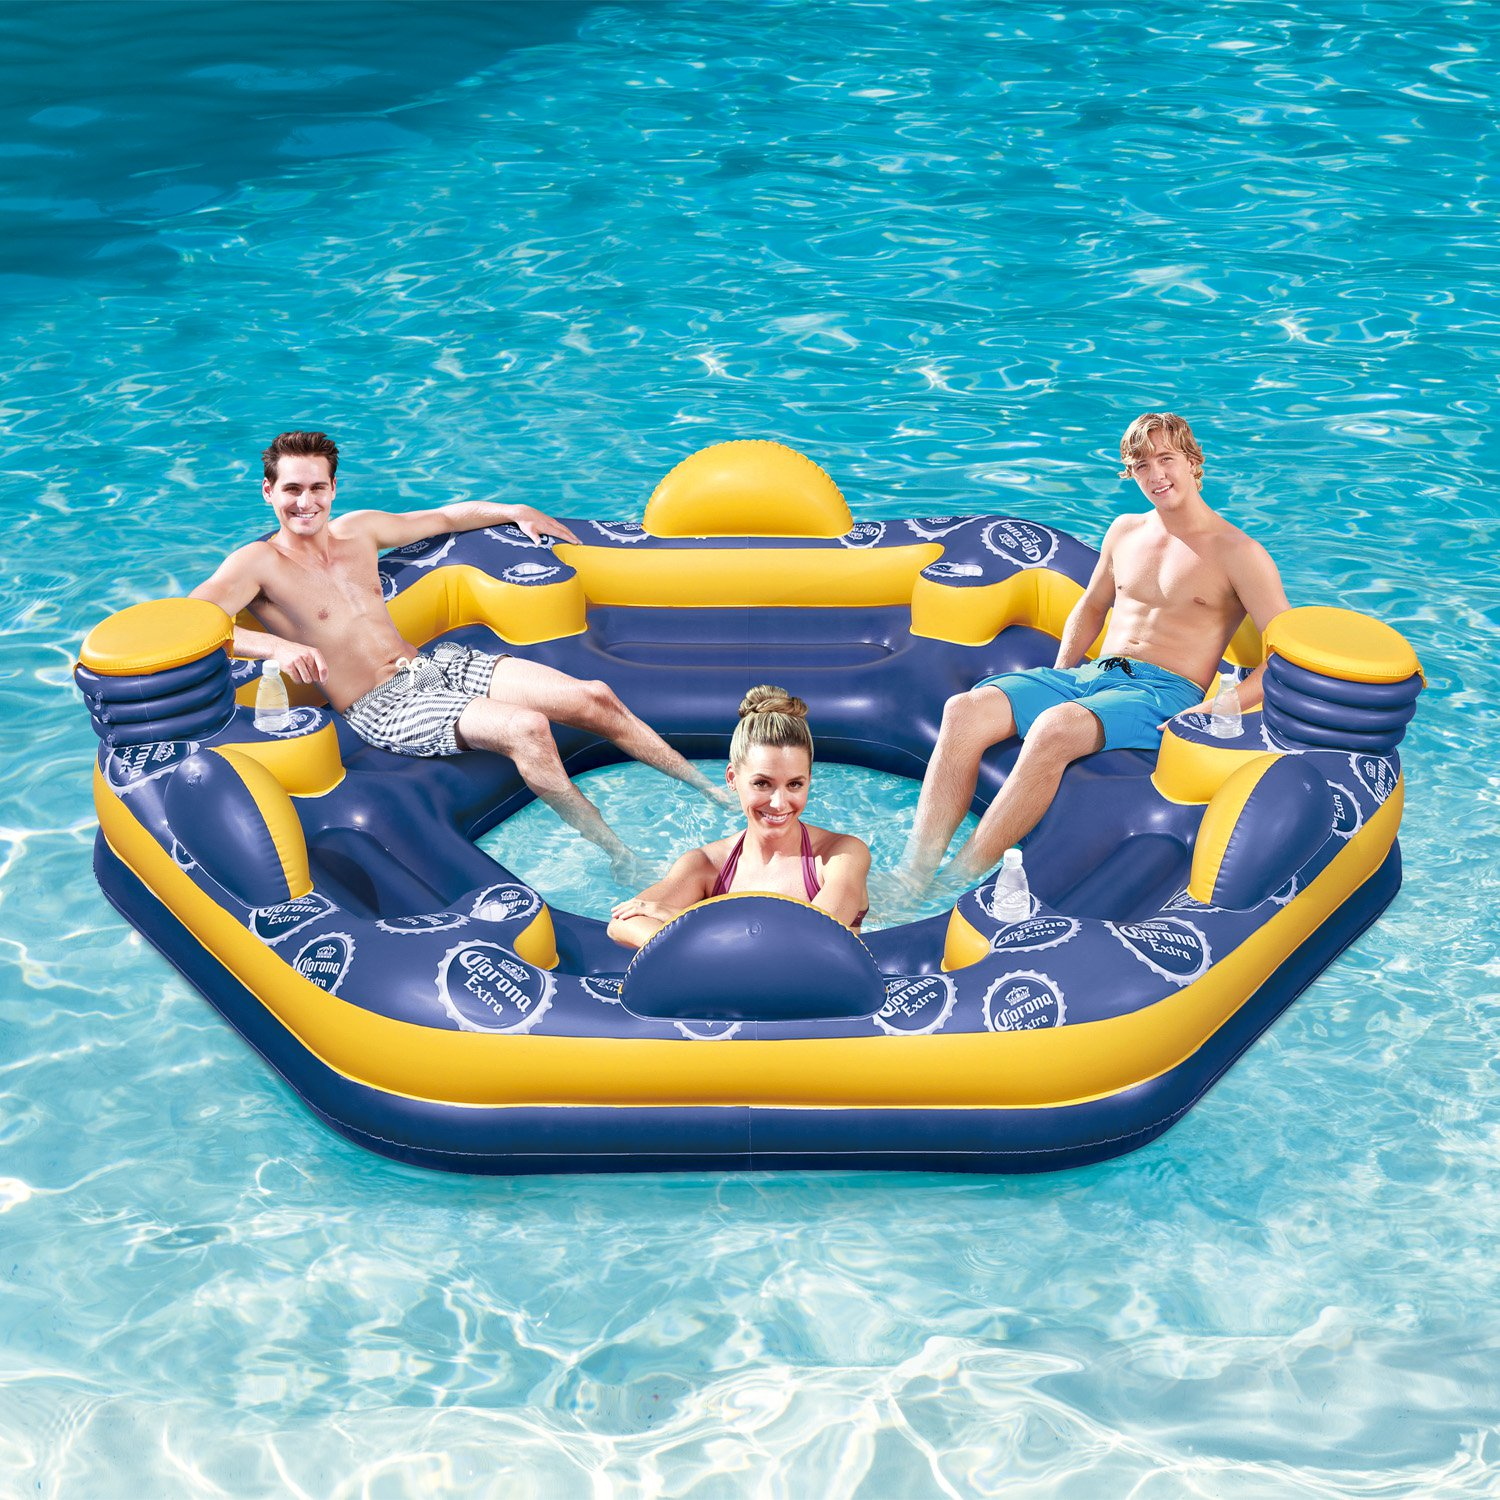 Corona 6 Person Giant Inflatable Island Raft With Built In Coolers U0026 Cup  Holders